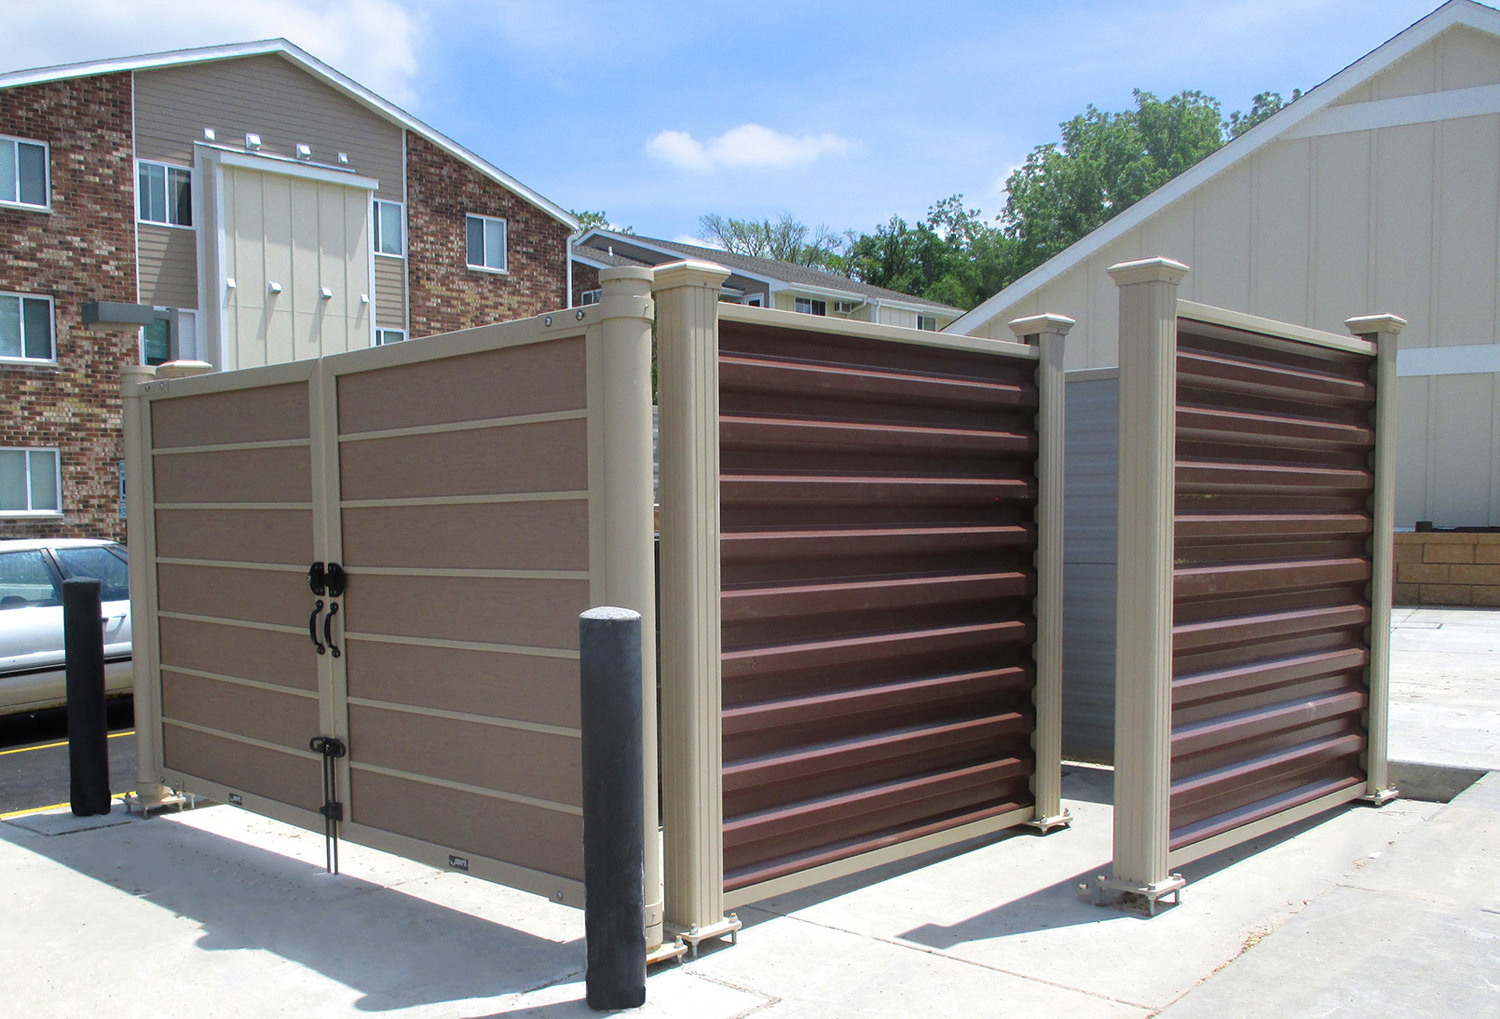 Dumpster Enclosures Installation Fresno